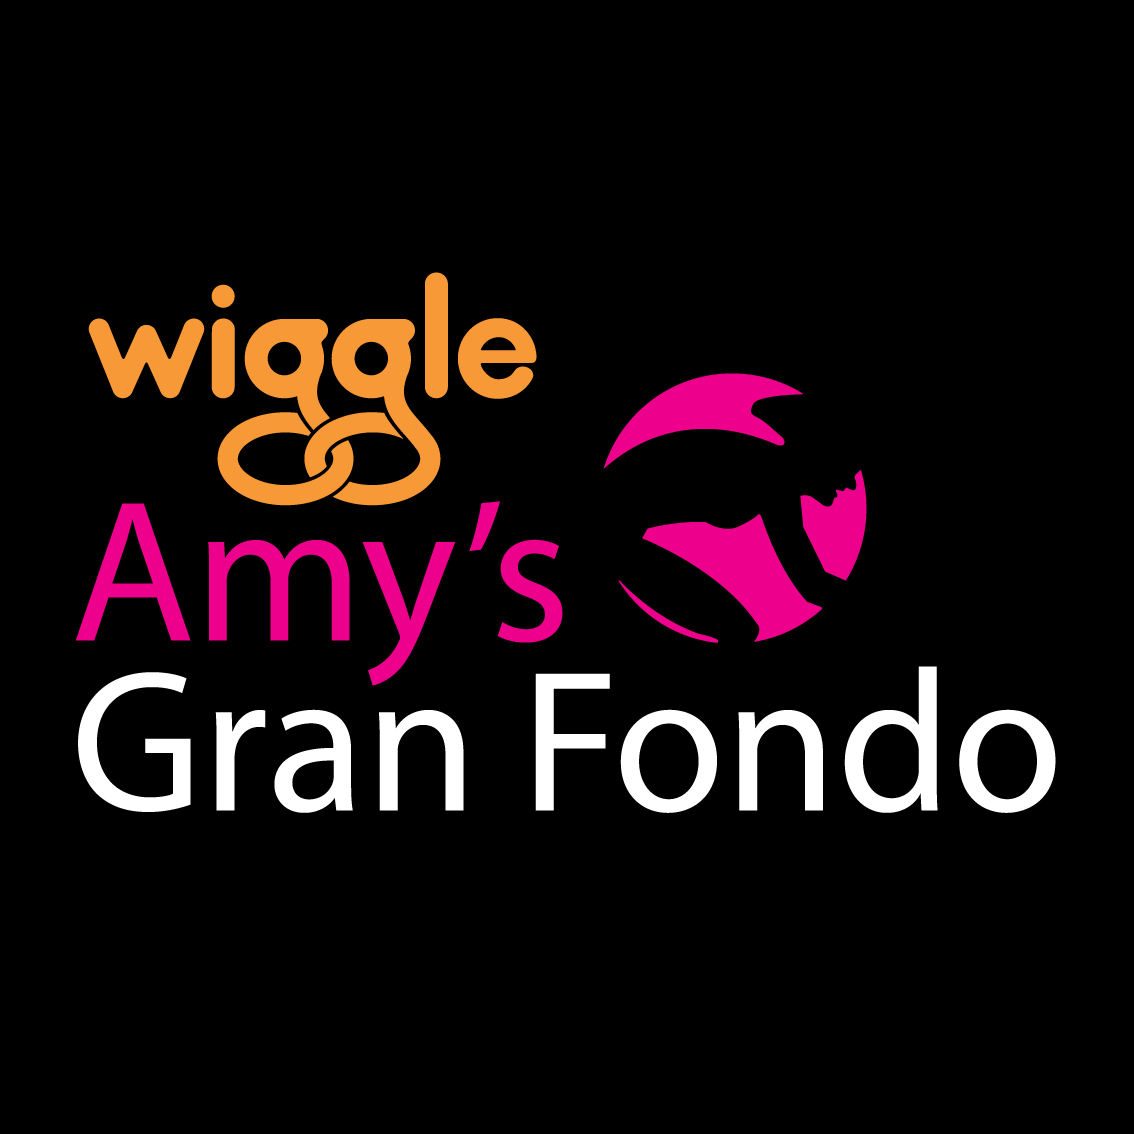 Amy Gillett has partnered with online retailer Wiggle